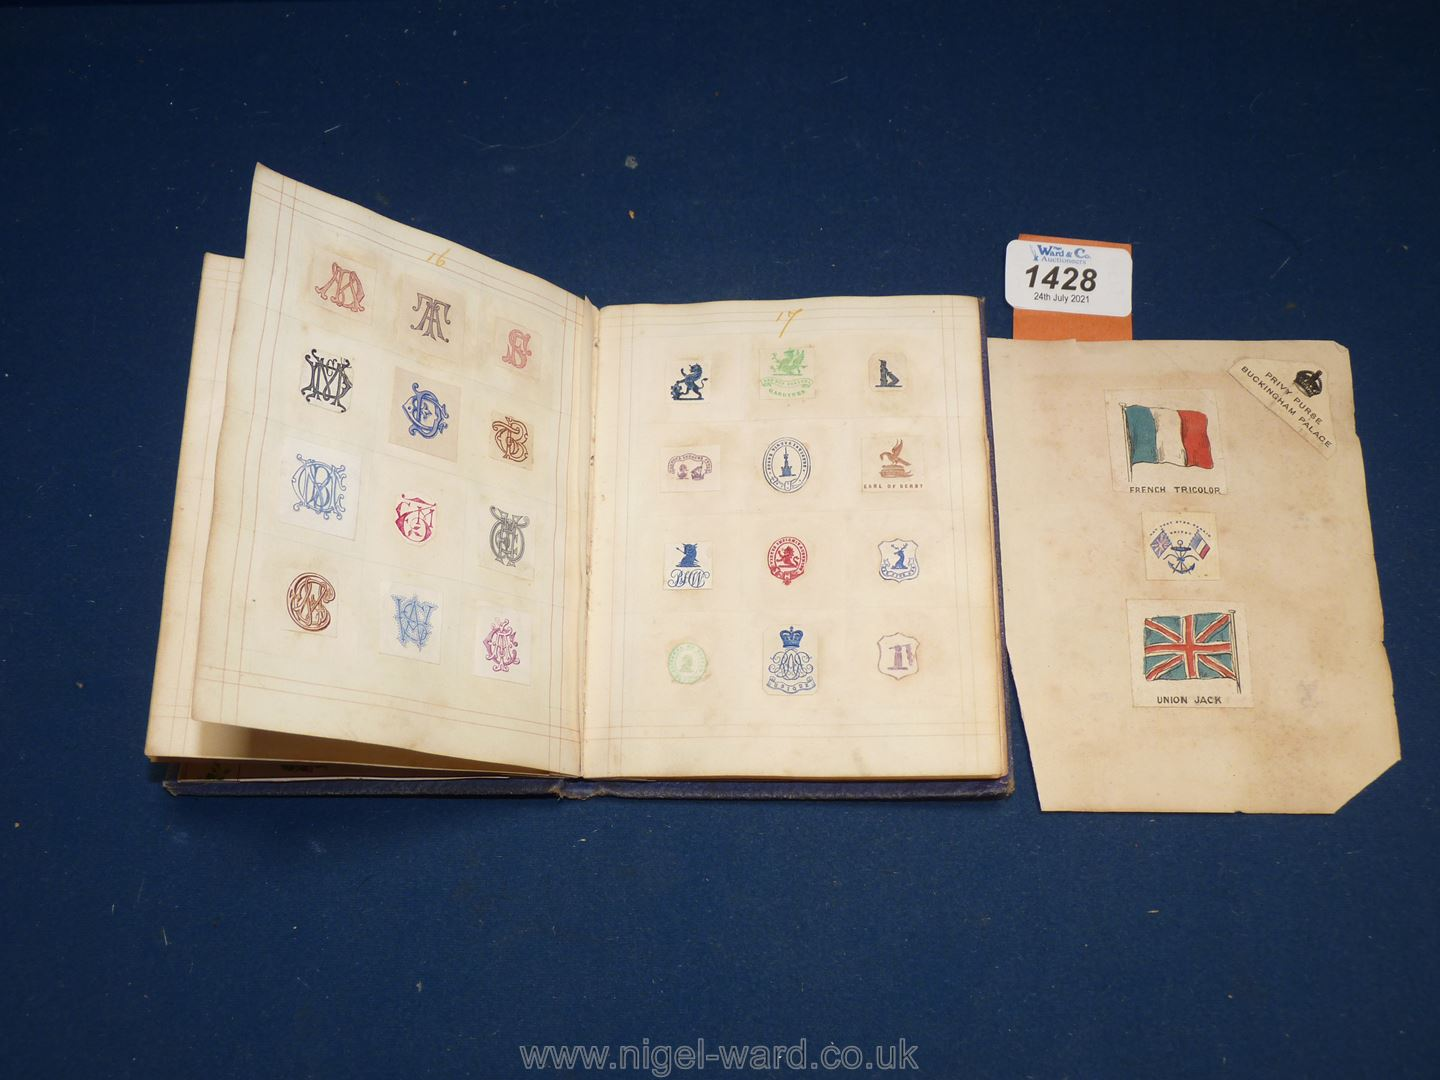 An interesting album of Coats of Arms, ciphers etc including Queen Victoria's family, nobility, - Image 6 of 7